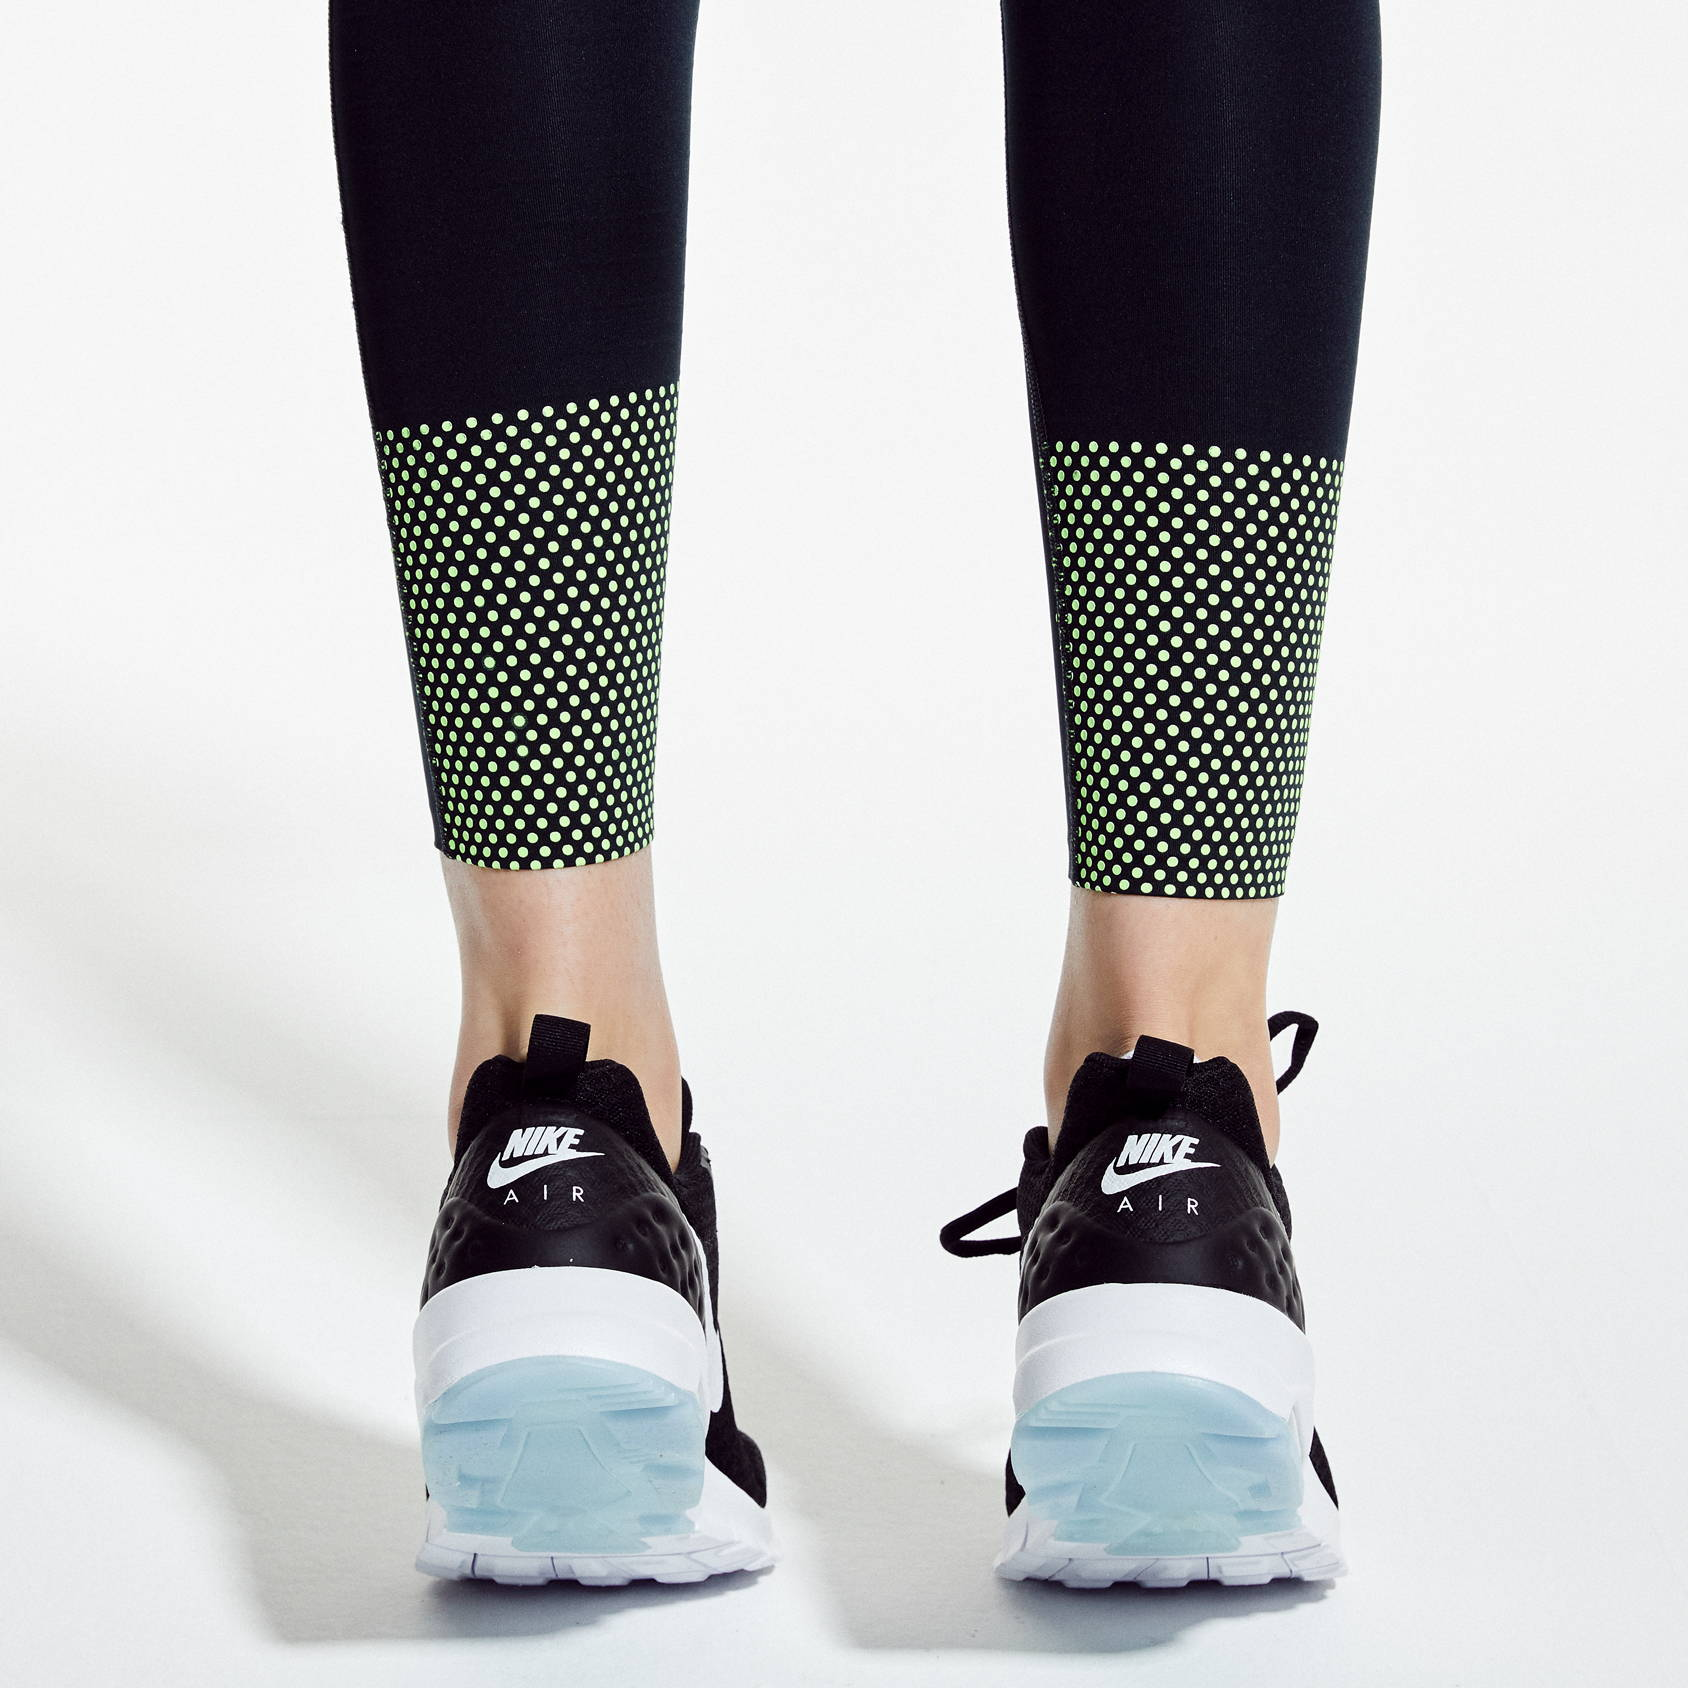 Womens-Glow-Performance-Tight-Ankle